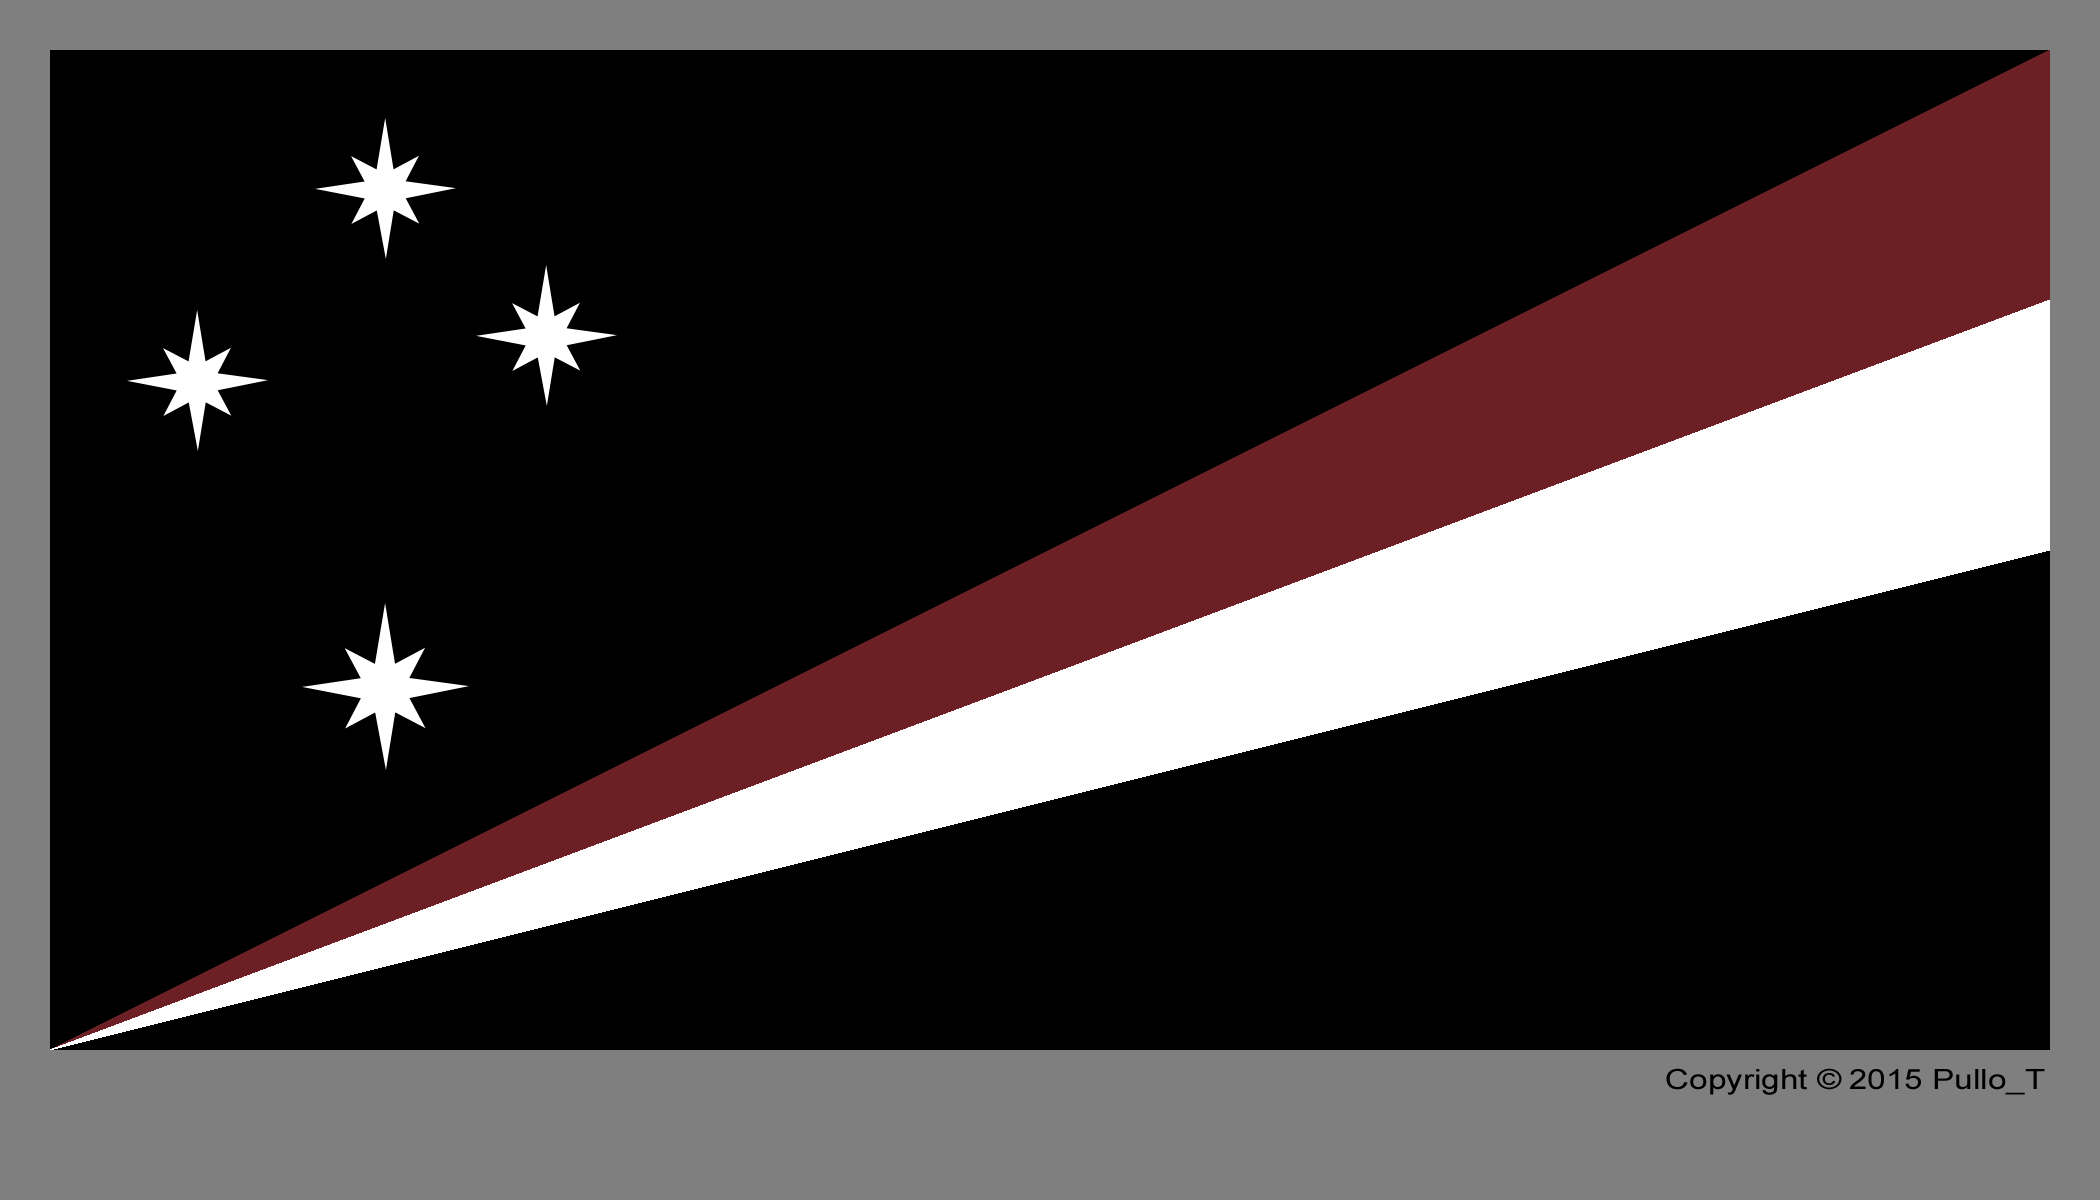 A New Flag For New Zealand